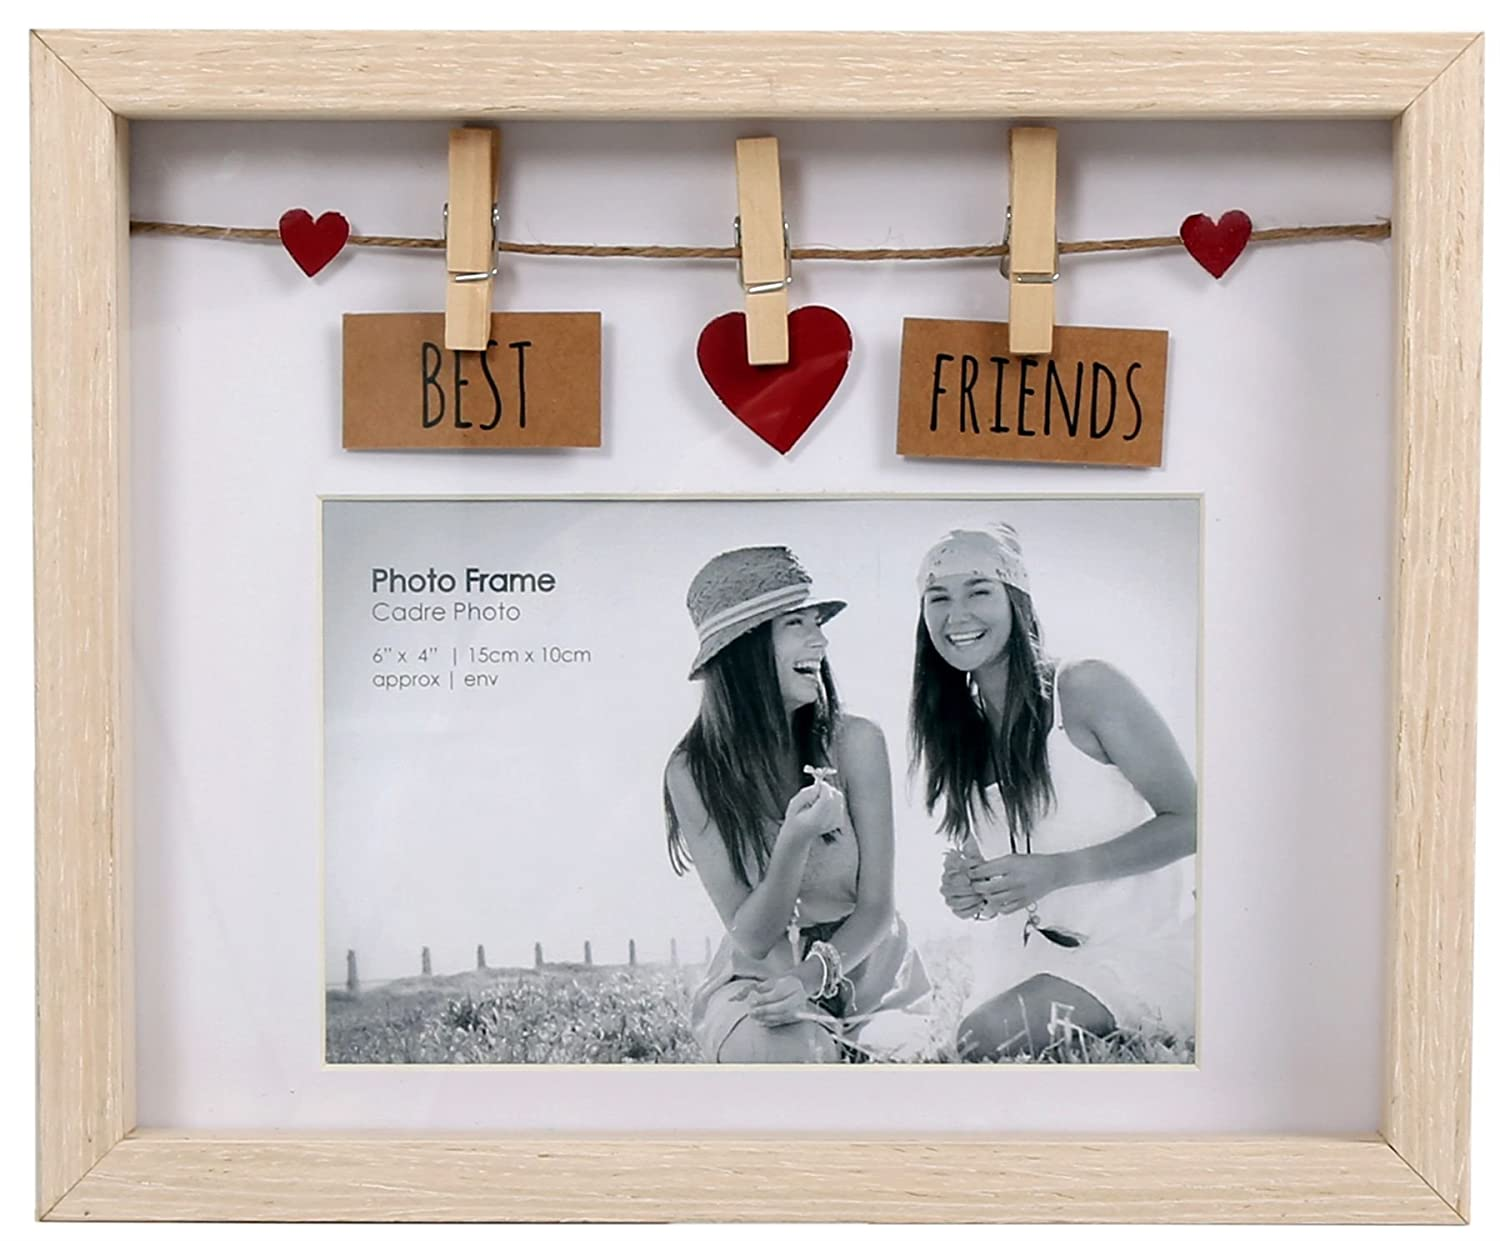 Clothes Line Wooden Box Frame With Pegs For 6 X 4 Photo - Best Friends Carousel Home